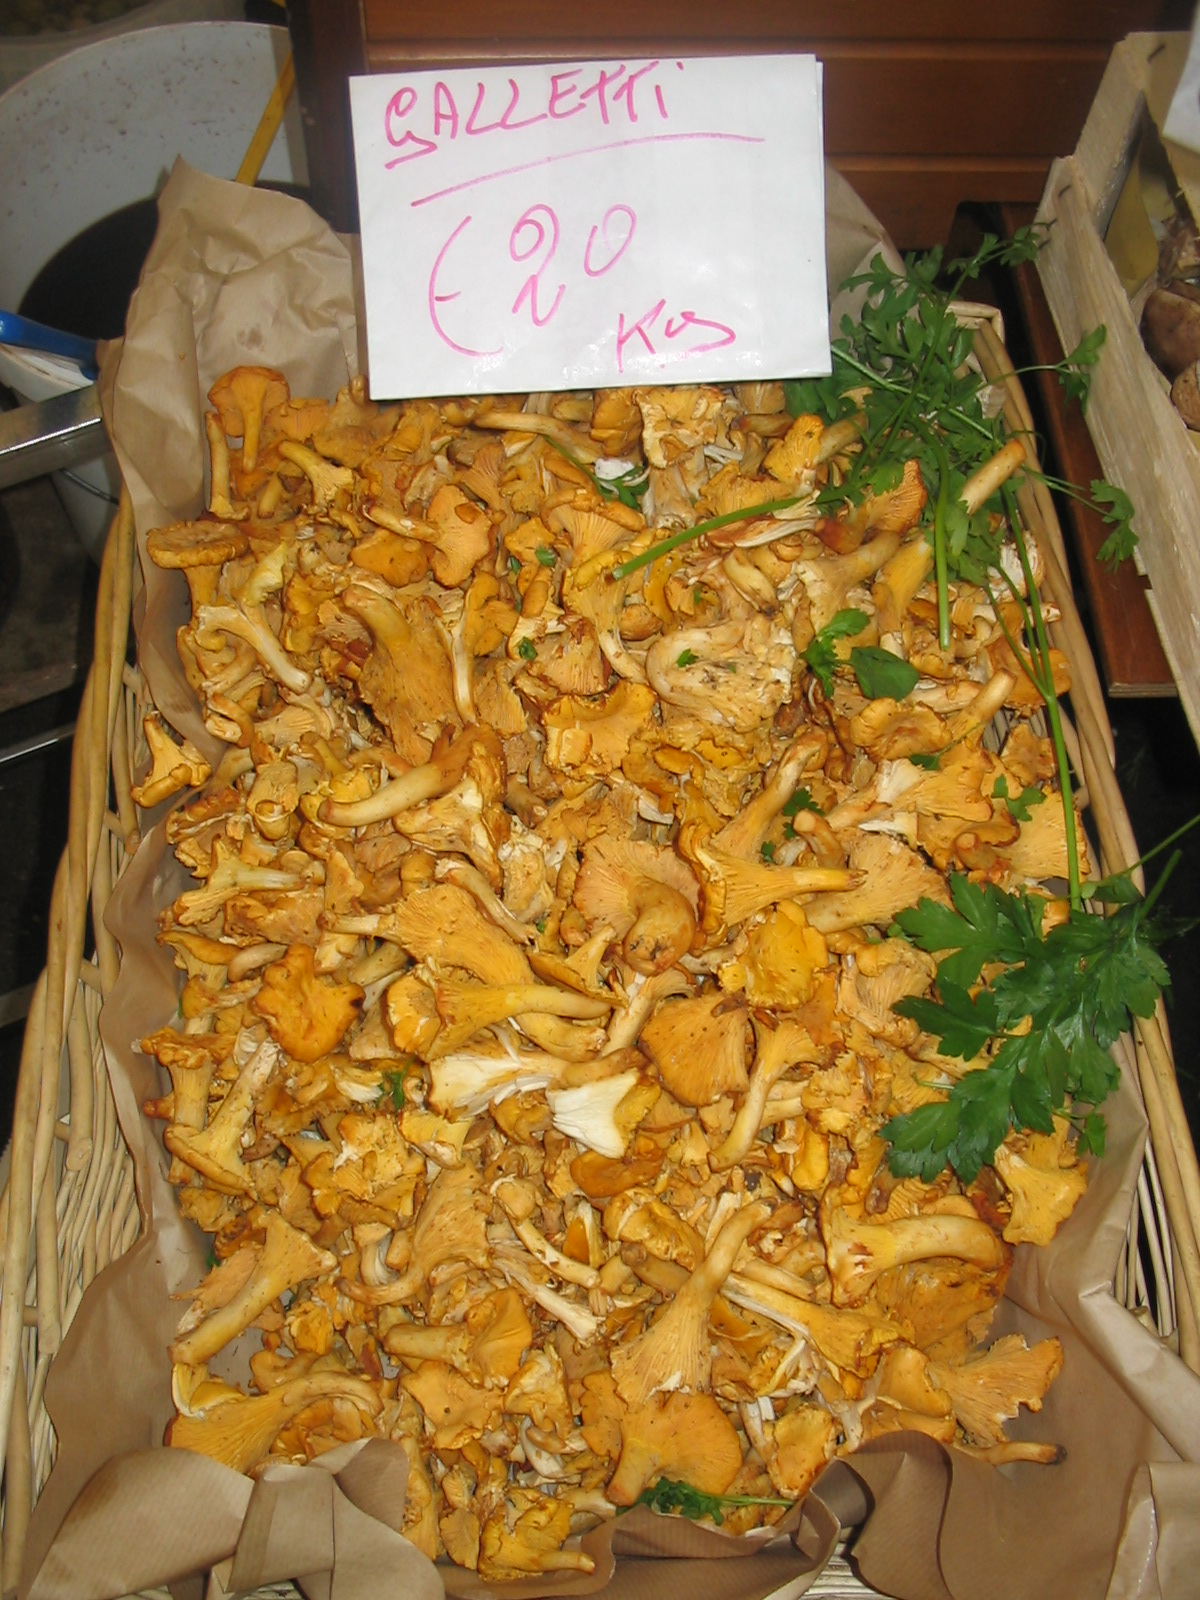 Chanterelle mushrooms; Photo, Susan McCrory